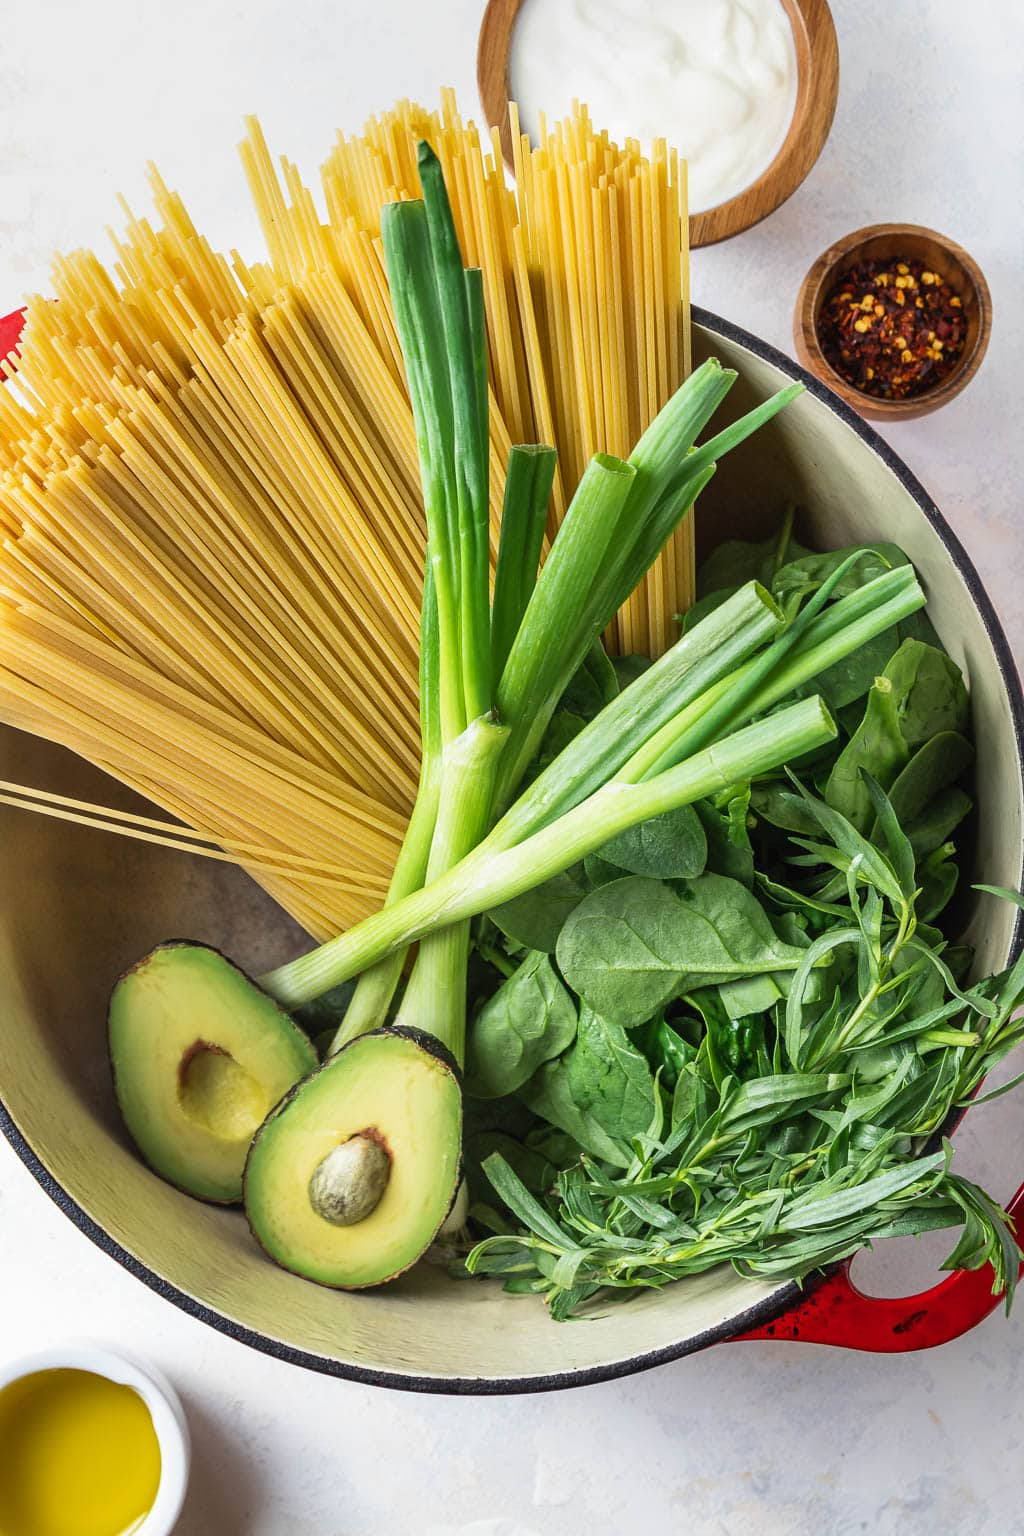 ingredients for avocado tarragon pesto pasta